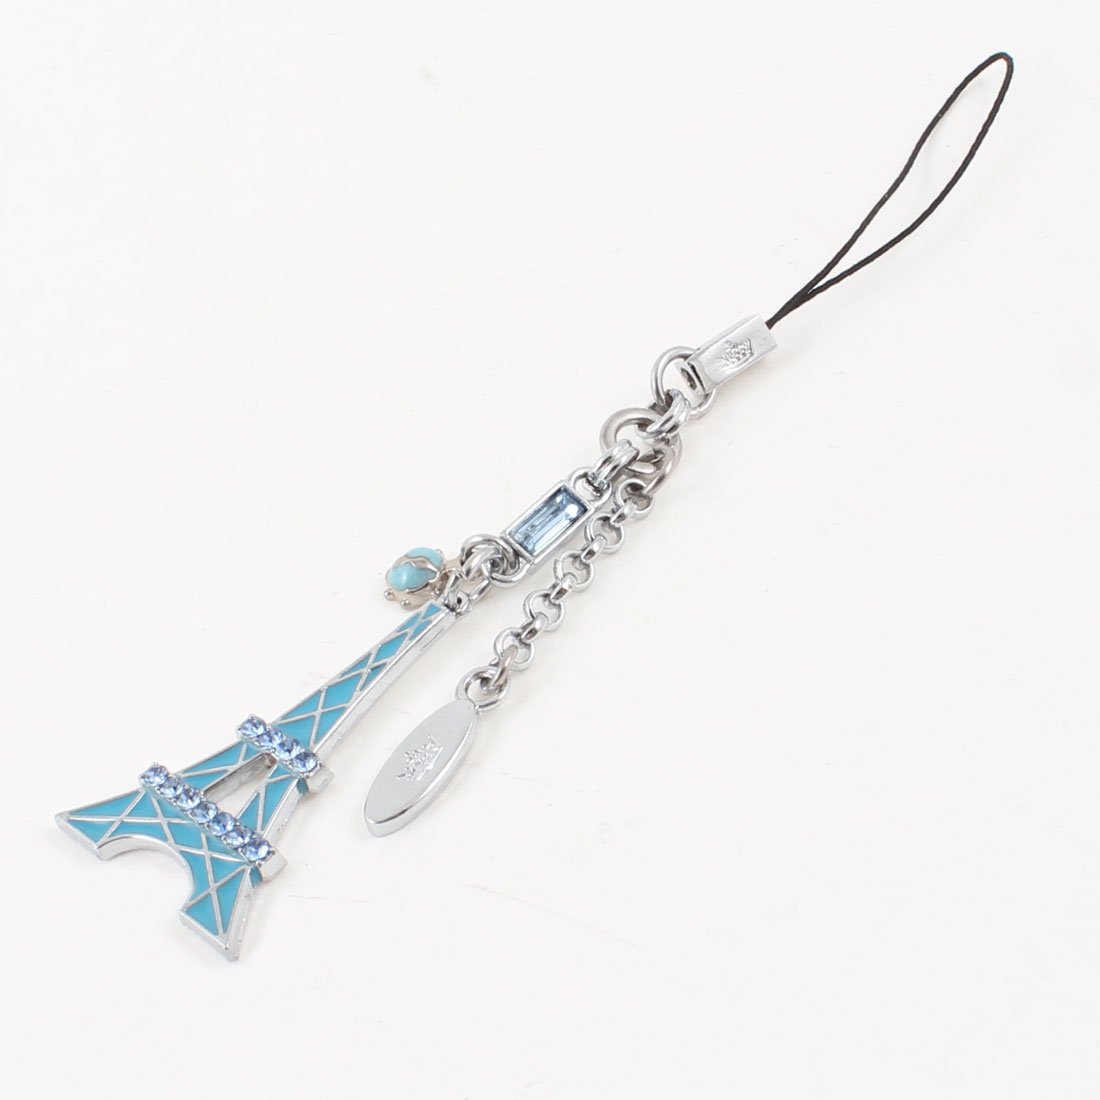 Blue Silver Tone Metal Eiffel Tower Cell Phone Pendant Mp3 Strap String